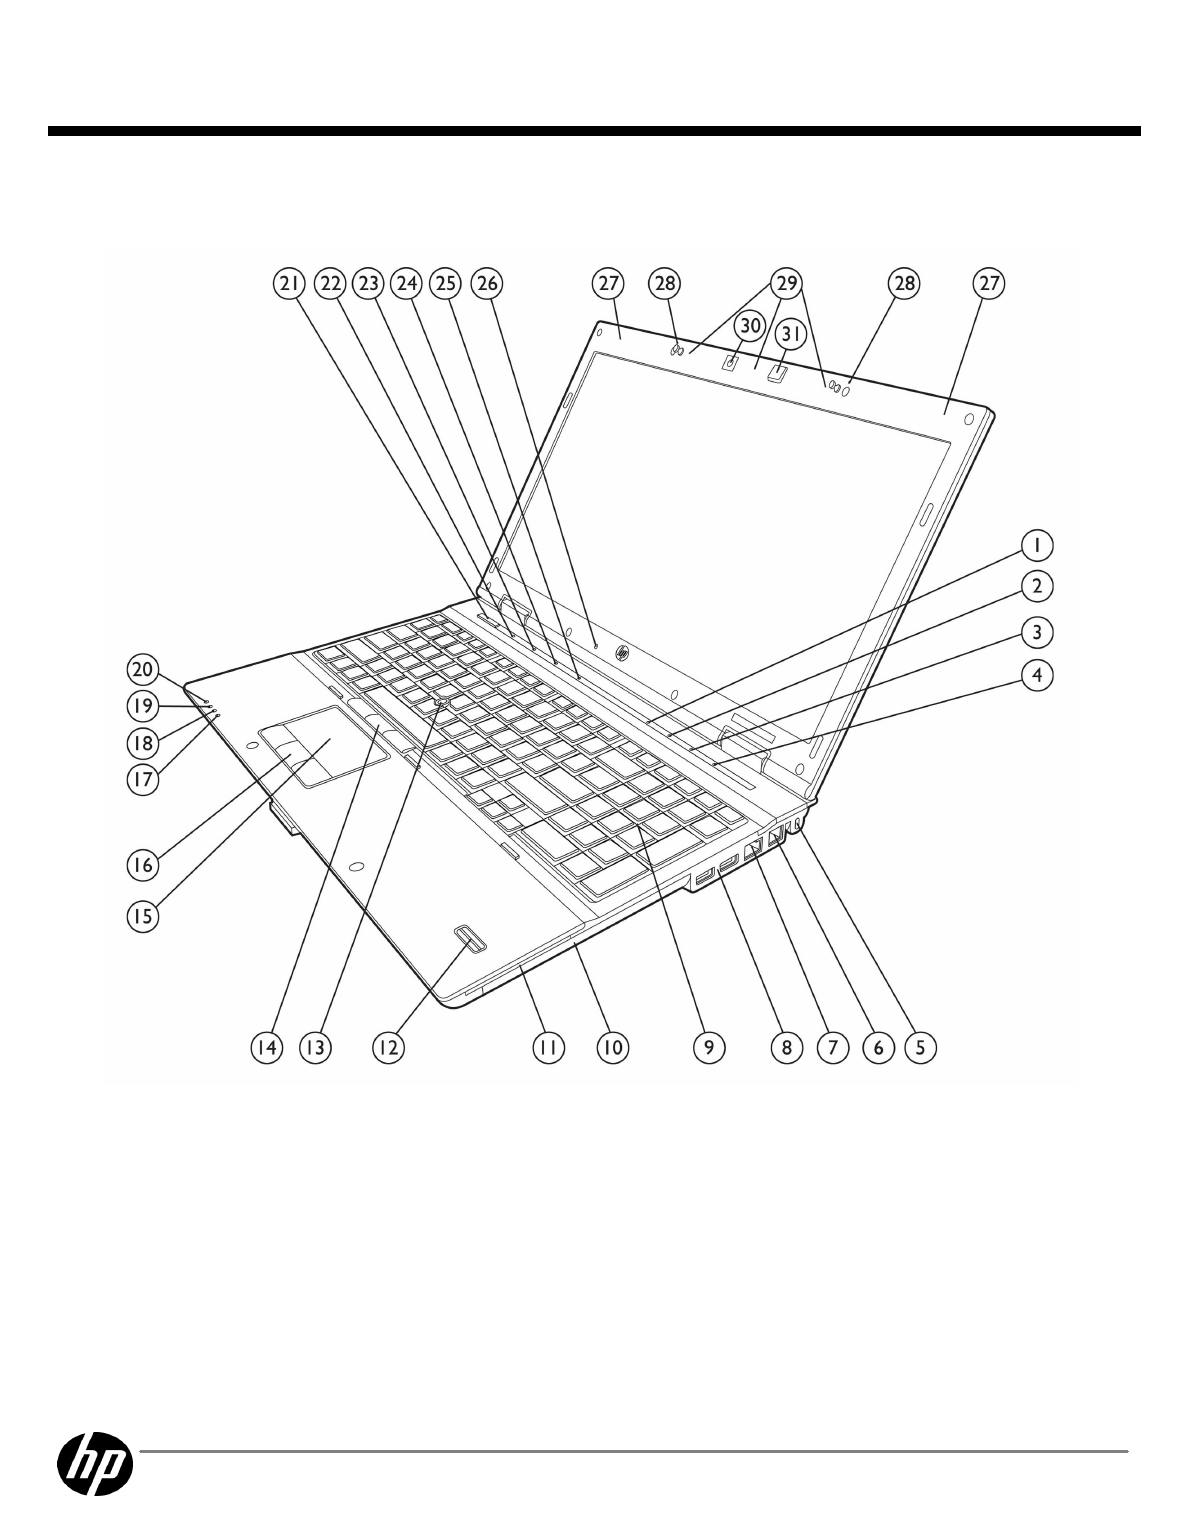 HP (Hewlett-Packard) Laptop 8540W User Guide